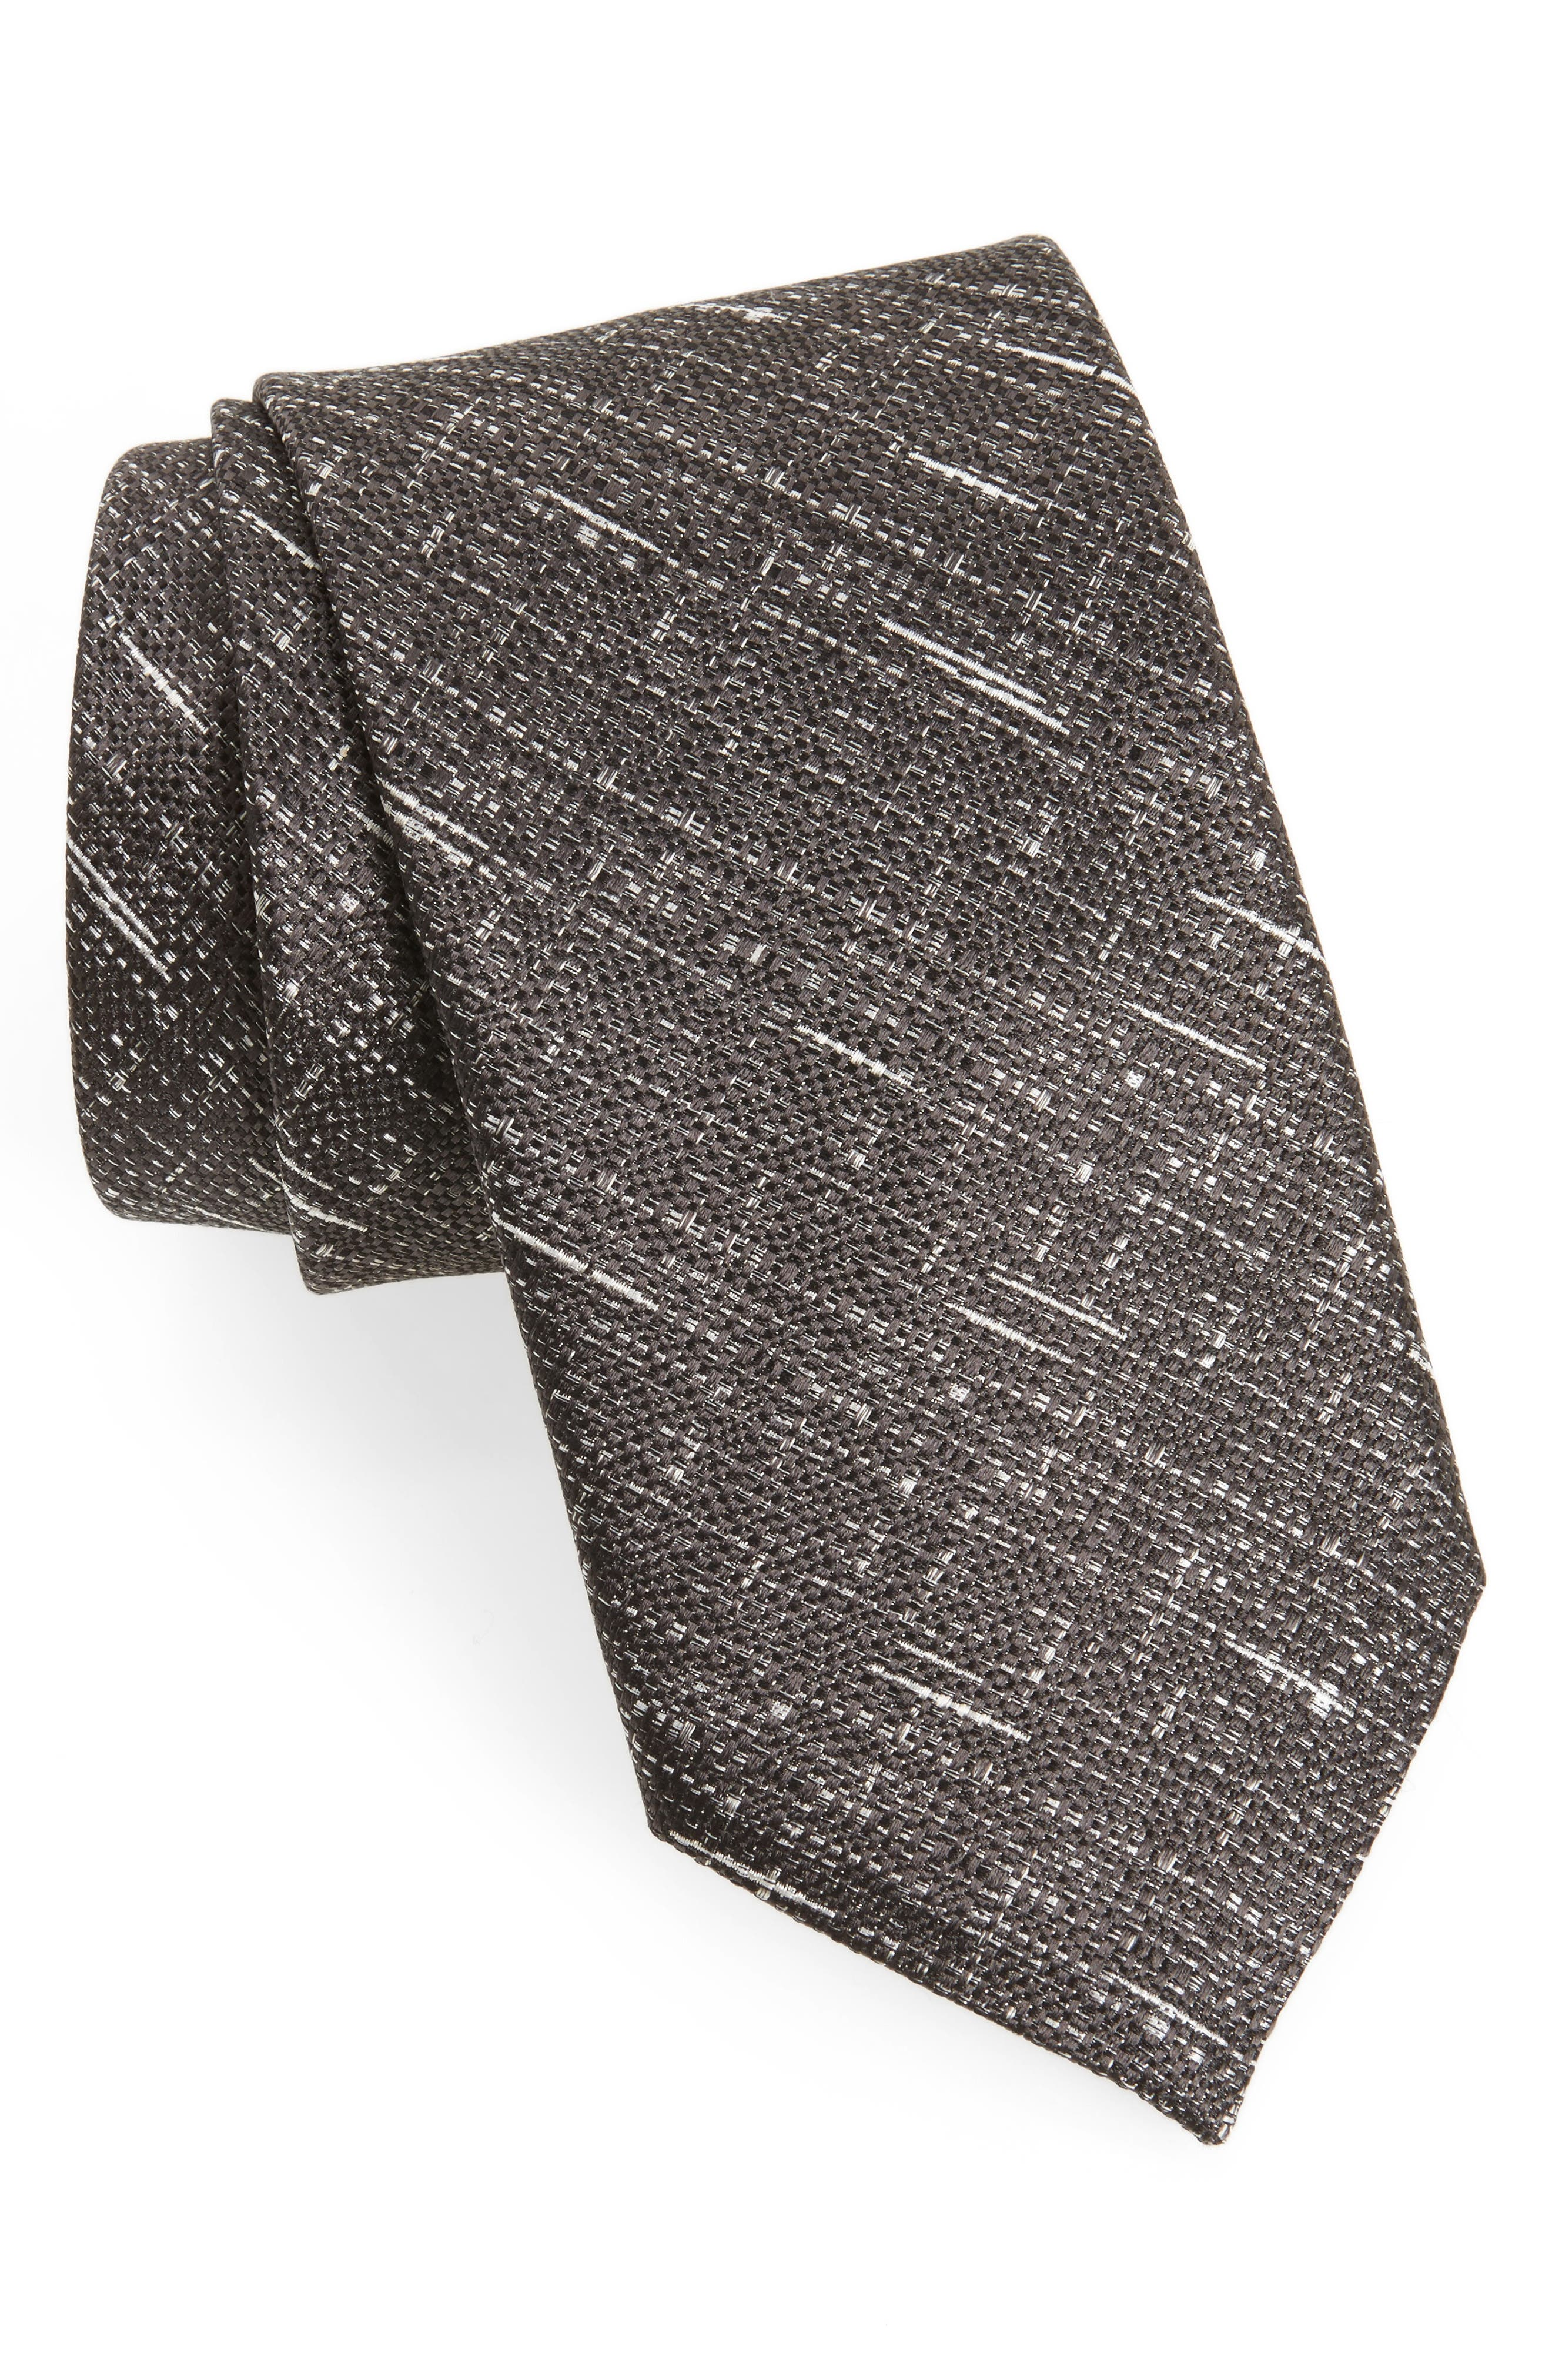 Alternate Image 1 Selected - Canali Textured Silk Tie